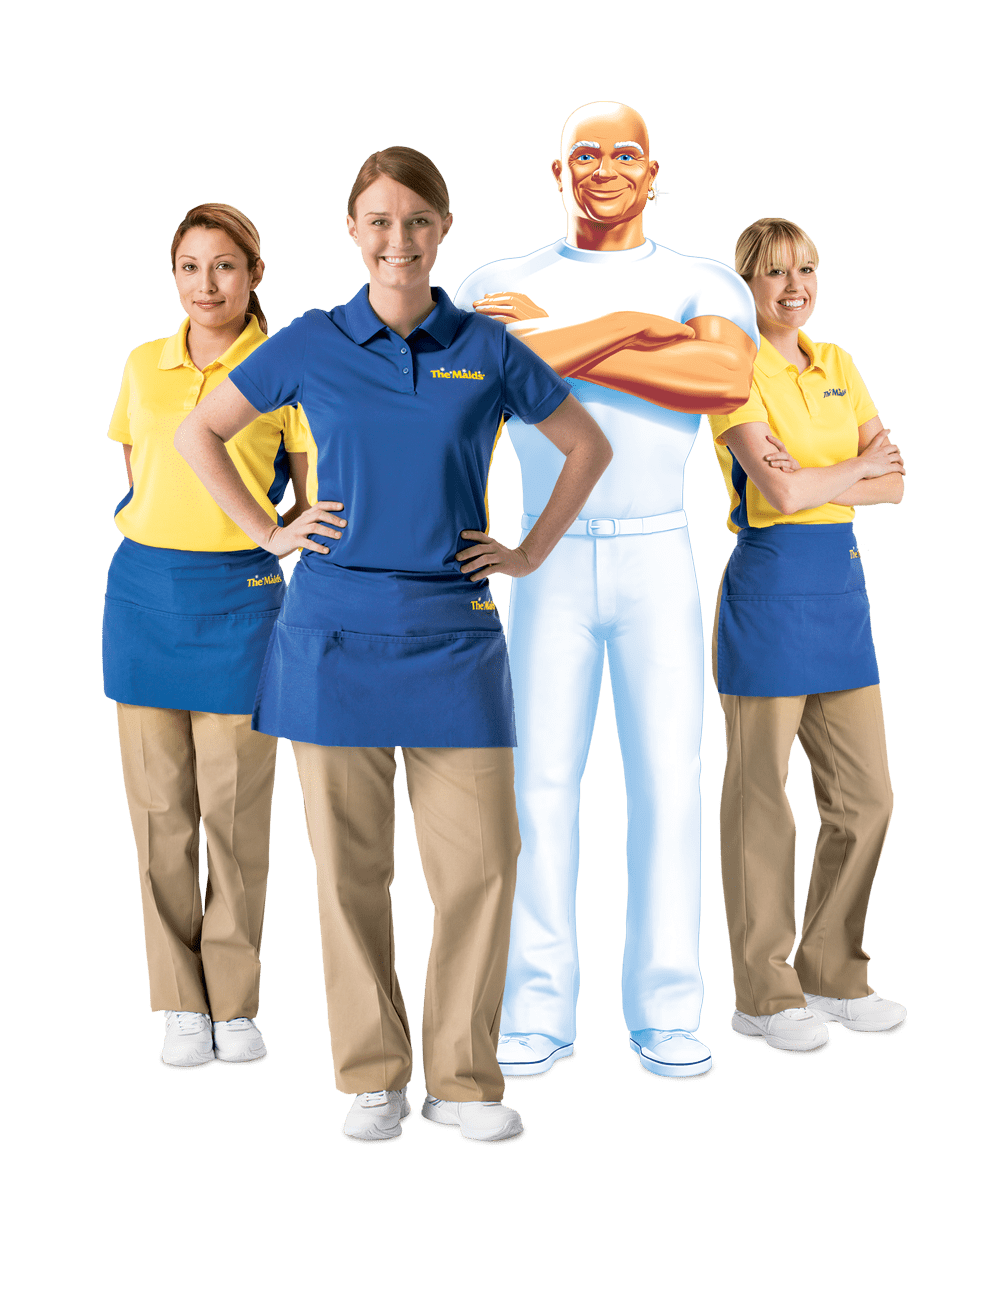 The Maids House Cleaning - The Maids in Cincinnati Home Cleaning